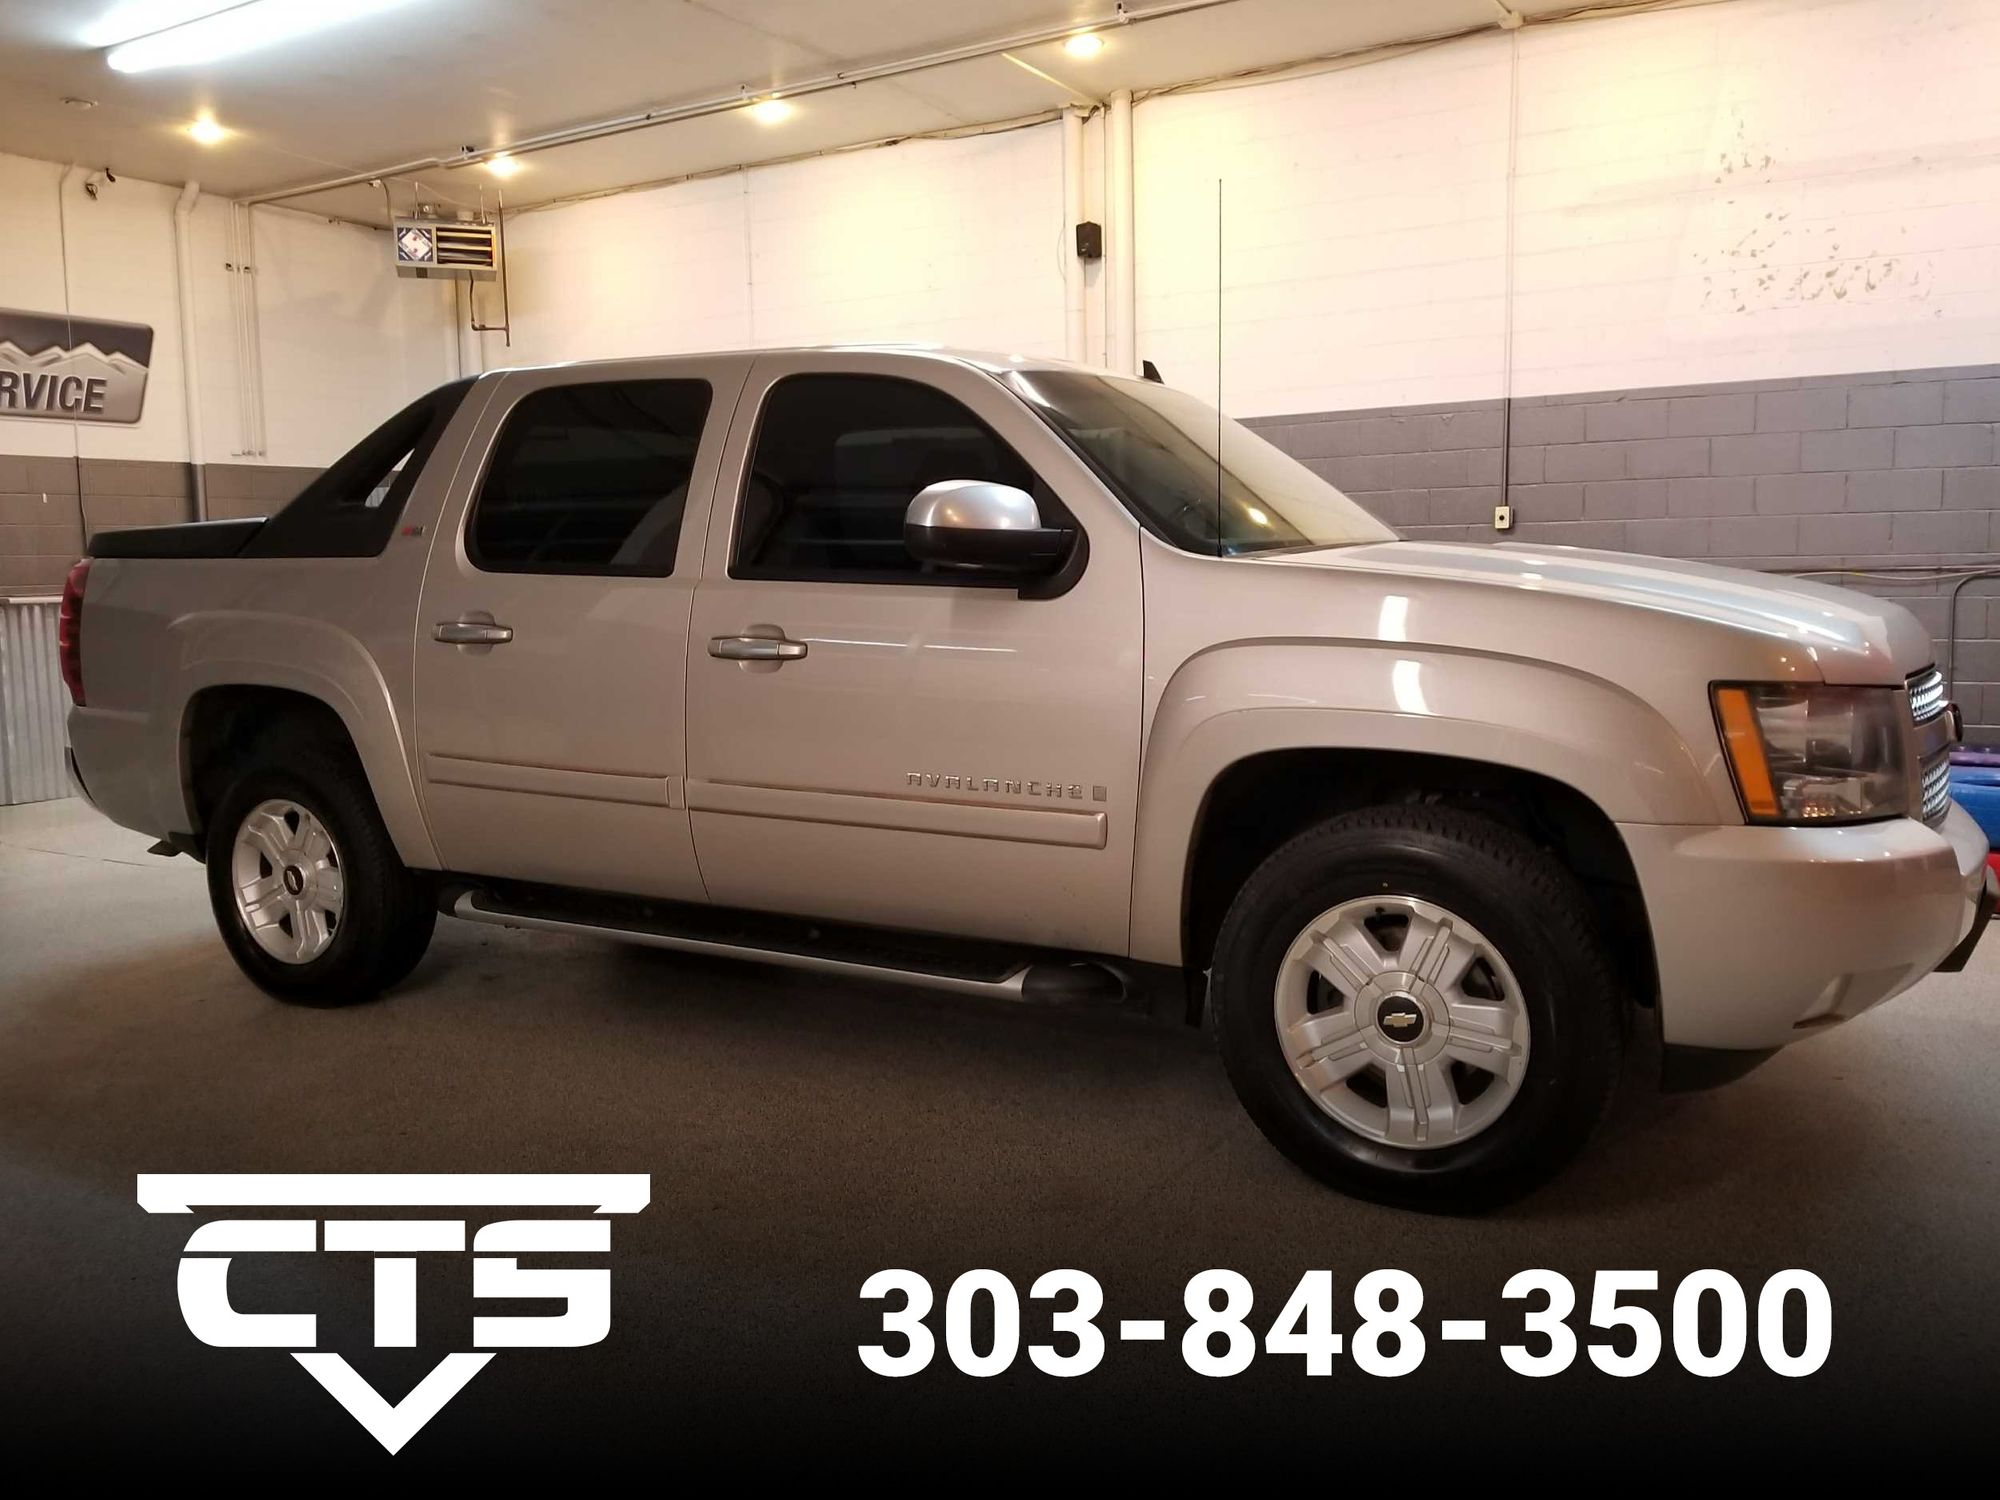 2007 chevrolet avalanche lt 1500 cts auto sales 2007 chevrolet avalanche lt 1500 4wd z71 package sciox Choice Image